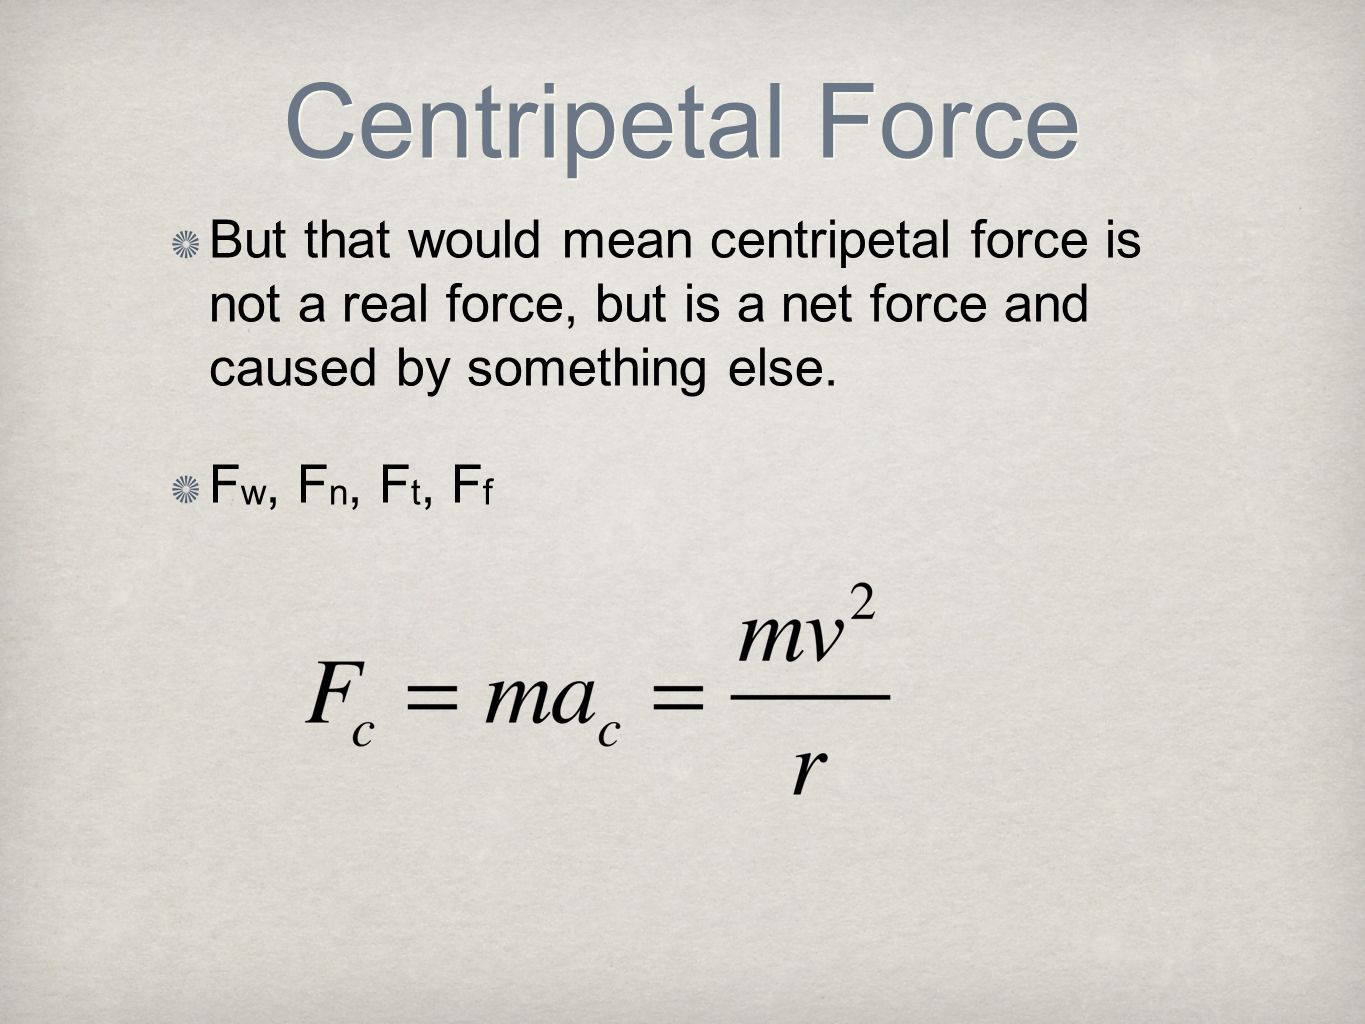 Centripetal Force But that would mean centripetal force is not a real force, but is a net force and caused by something else.